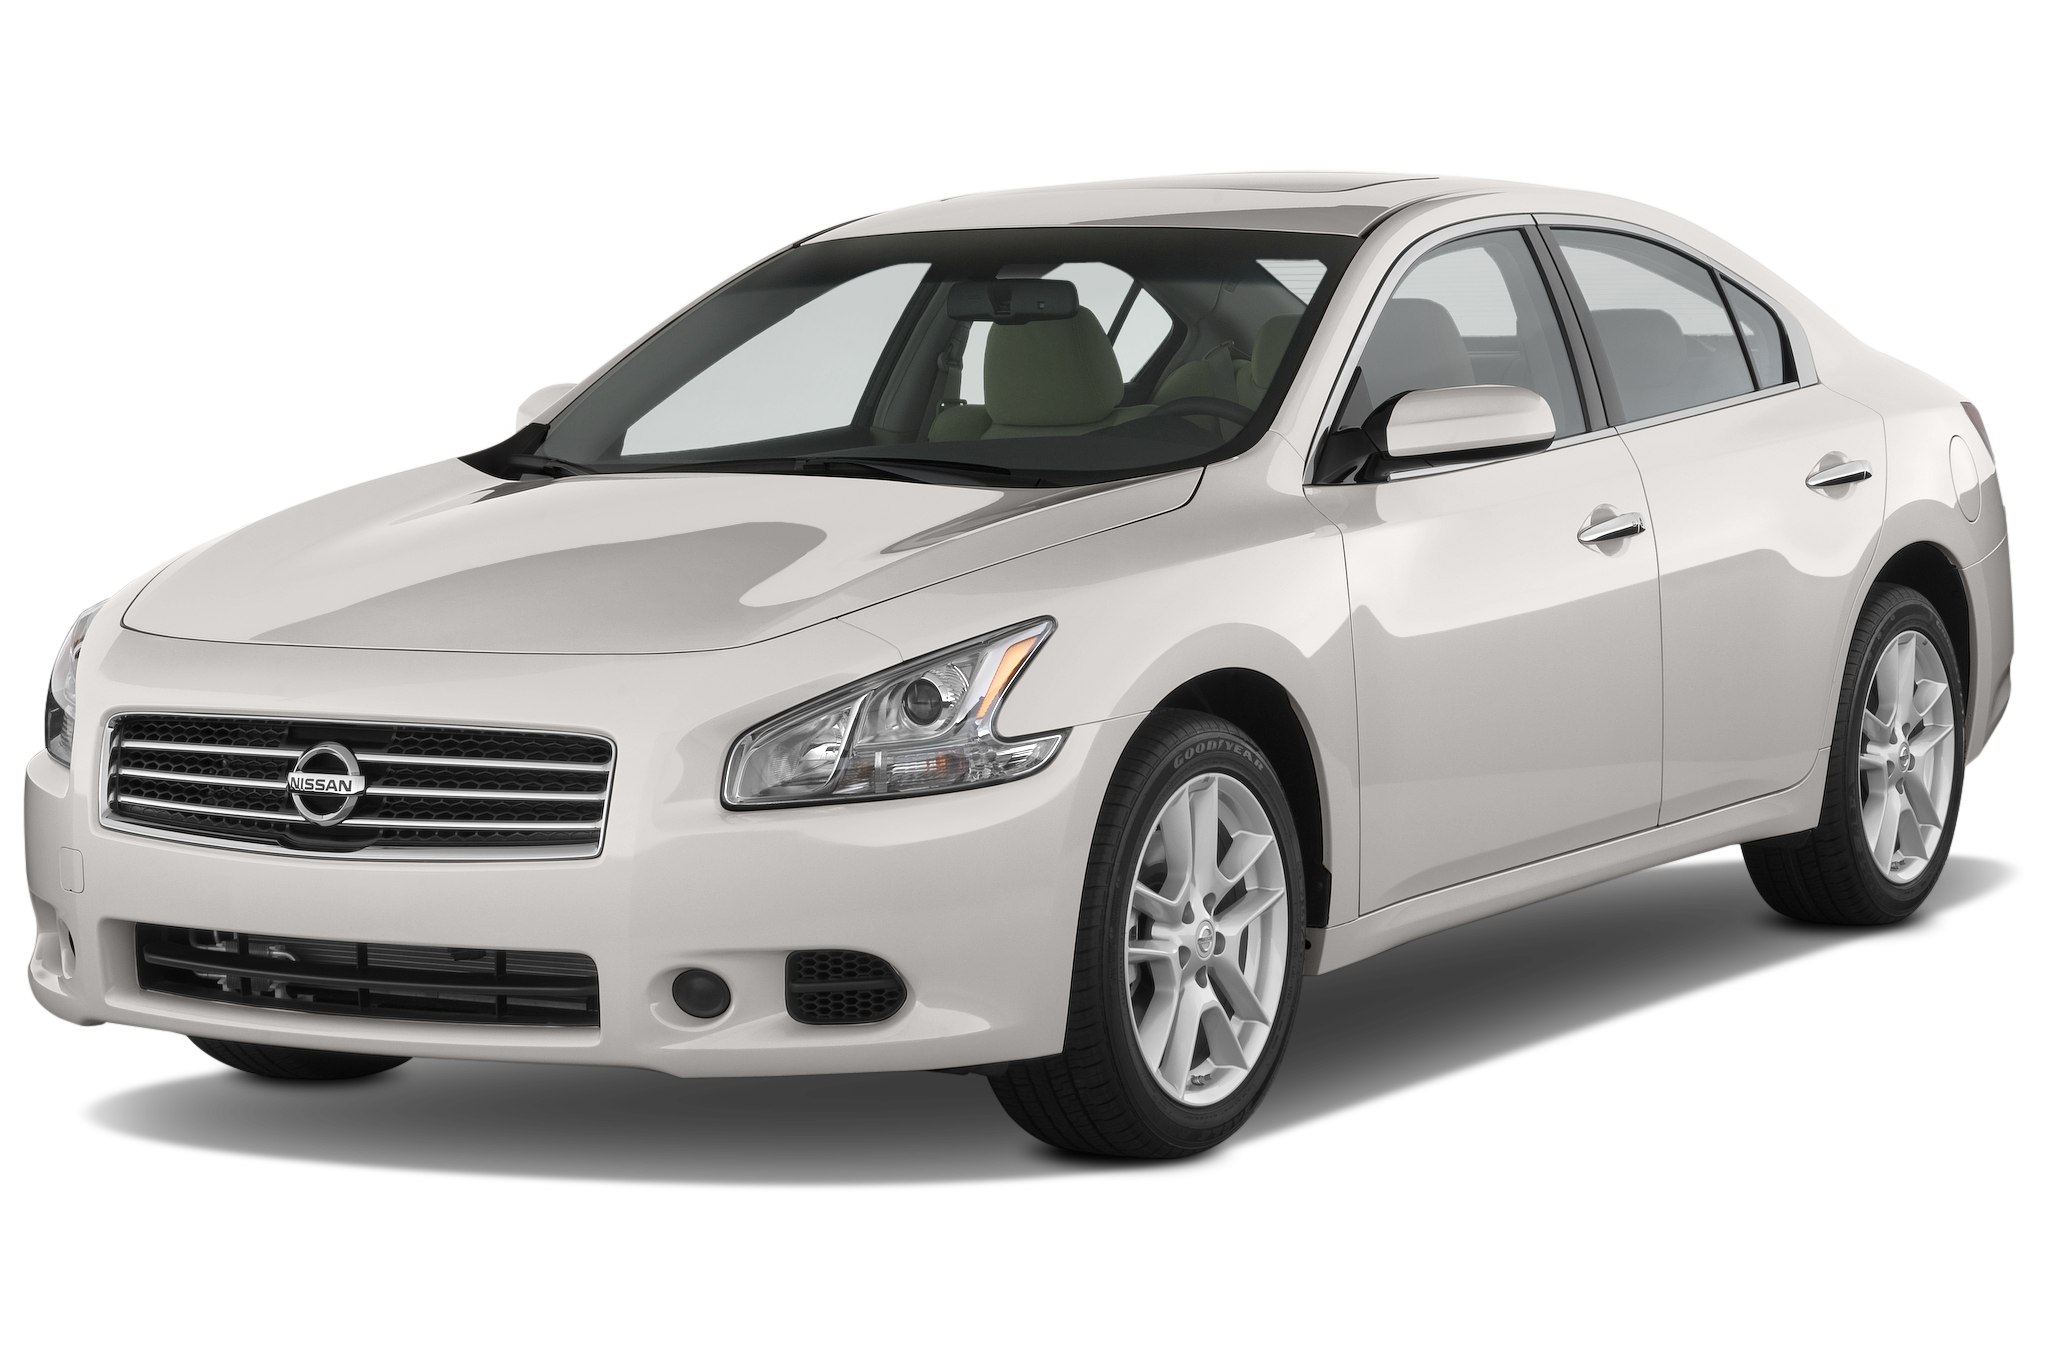 2014 nissan maxima reviews and rating | motortrend